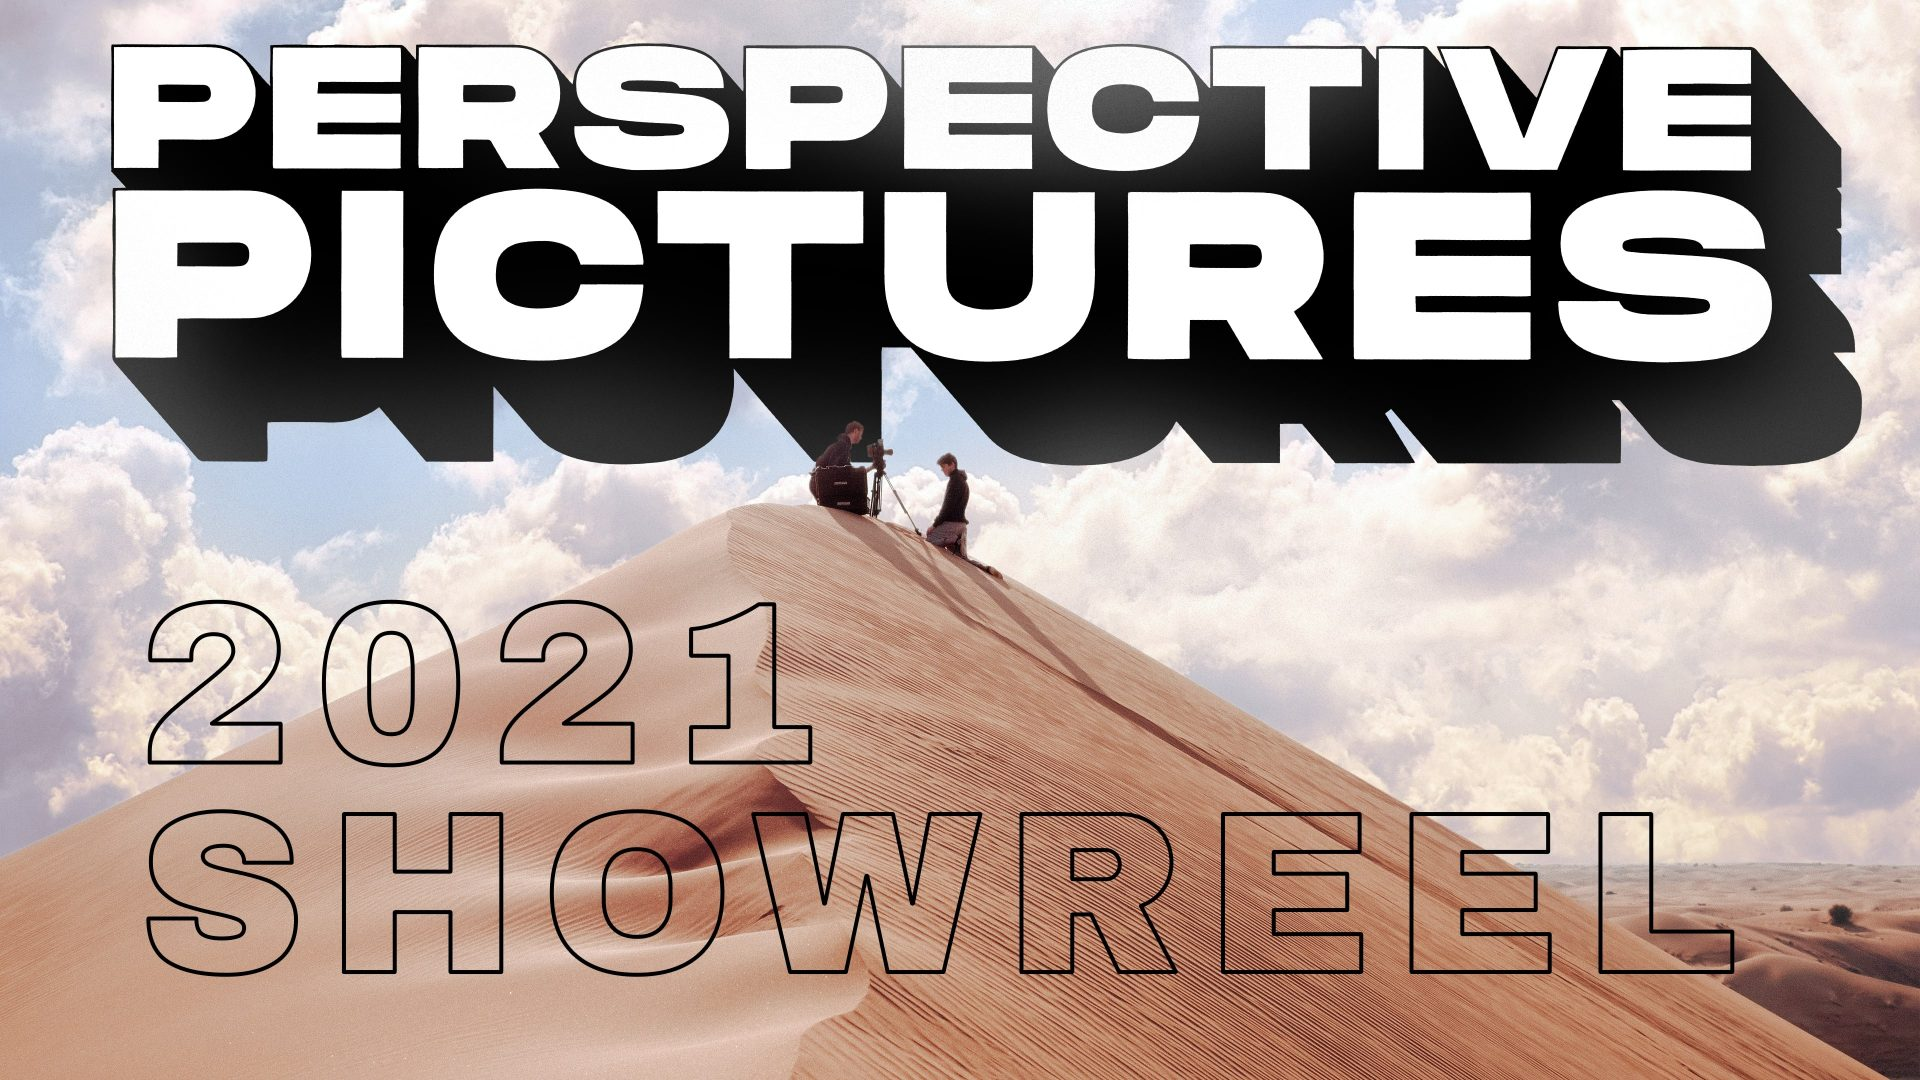 Perspective Pictures Showreel thumbnail